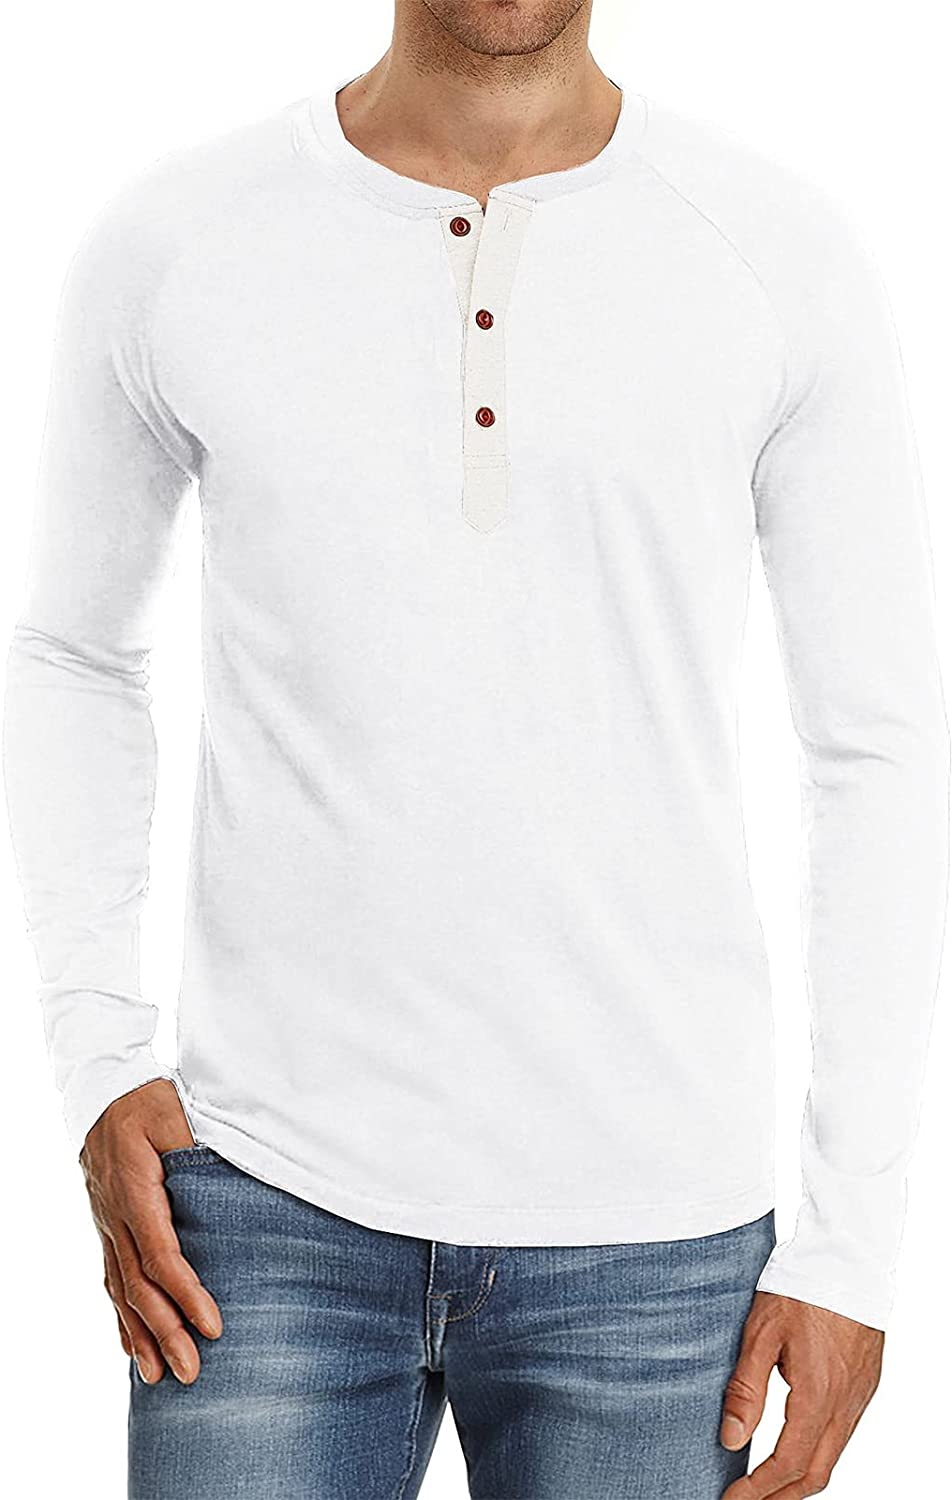 Angbater Mens Fashion Casual Henley T-Shirts Slim Fit Cotton Long Sleeve Shirts Summer Buttons Tees